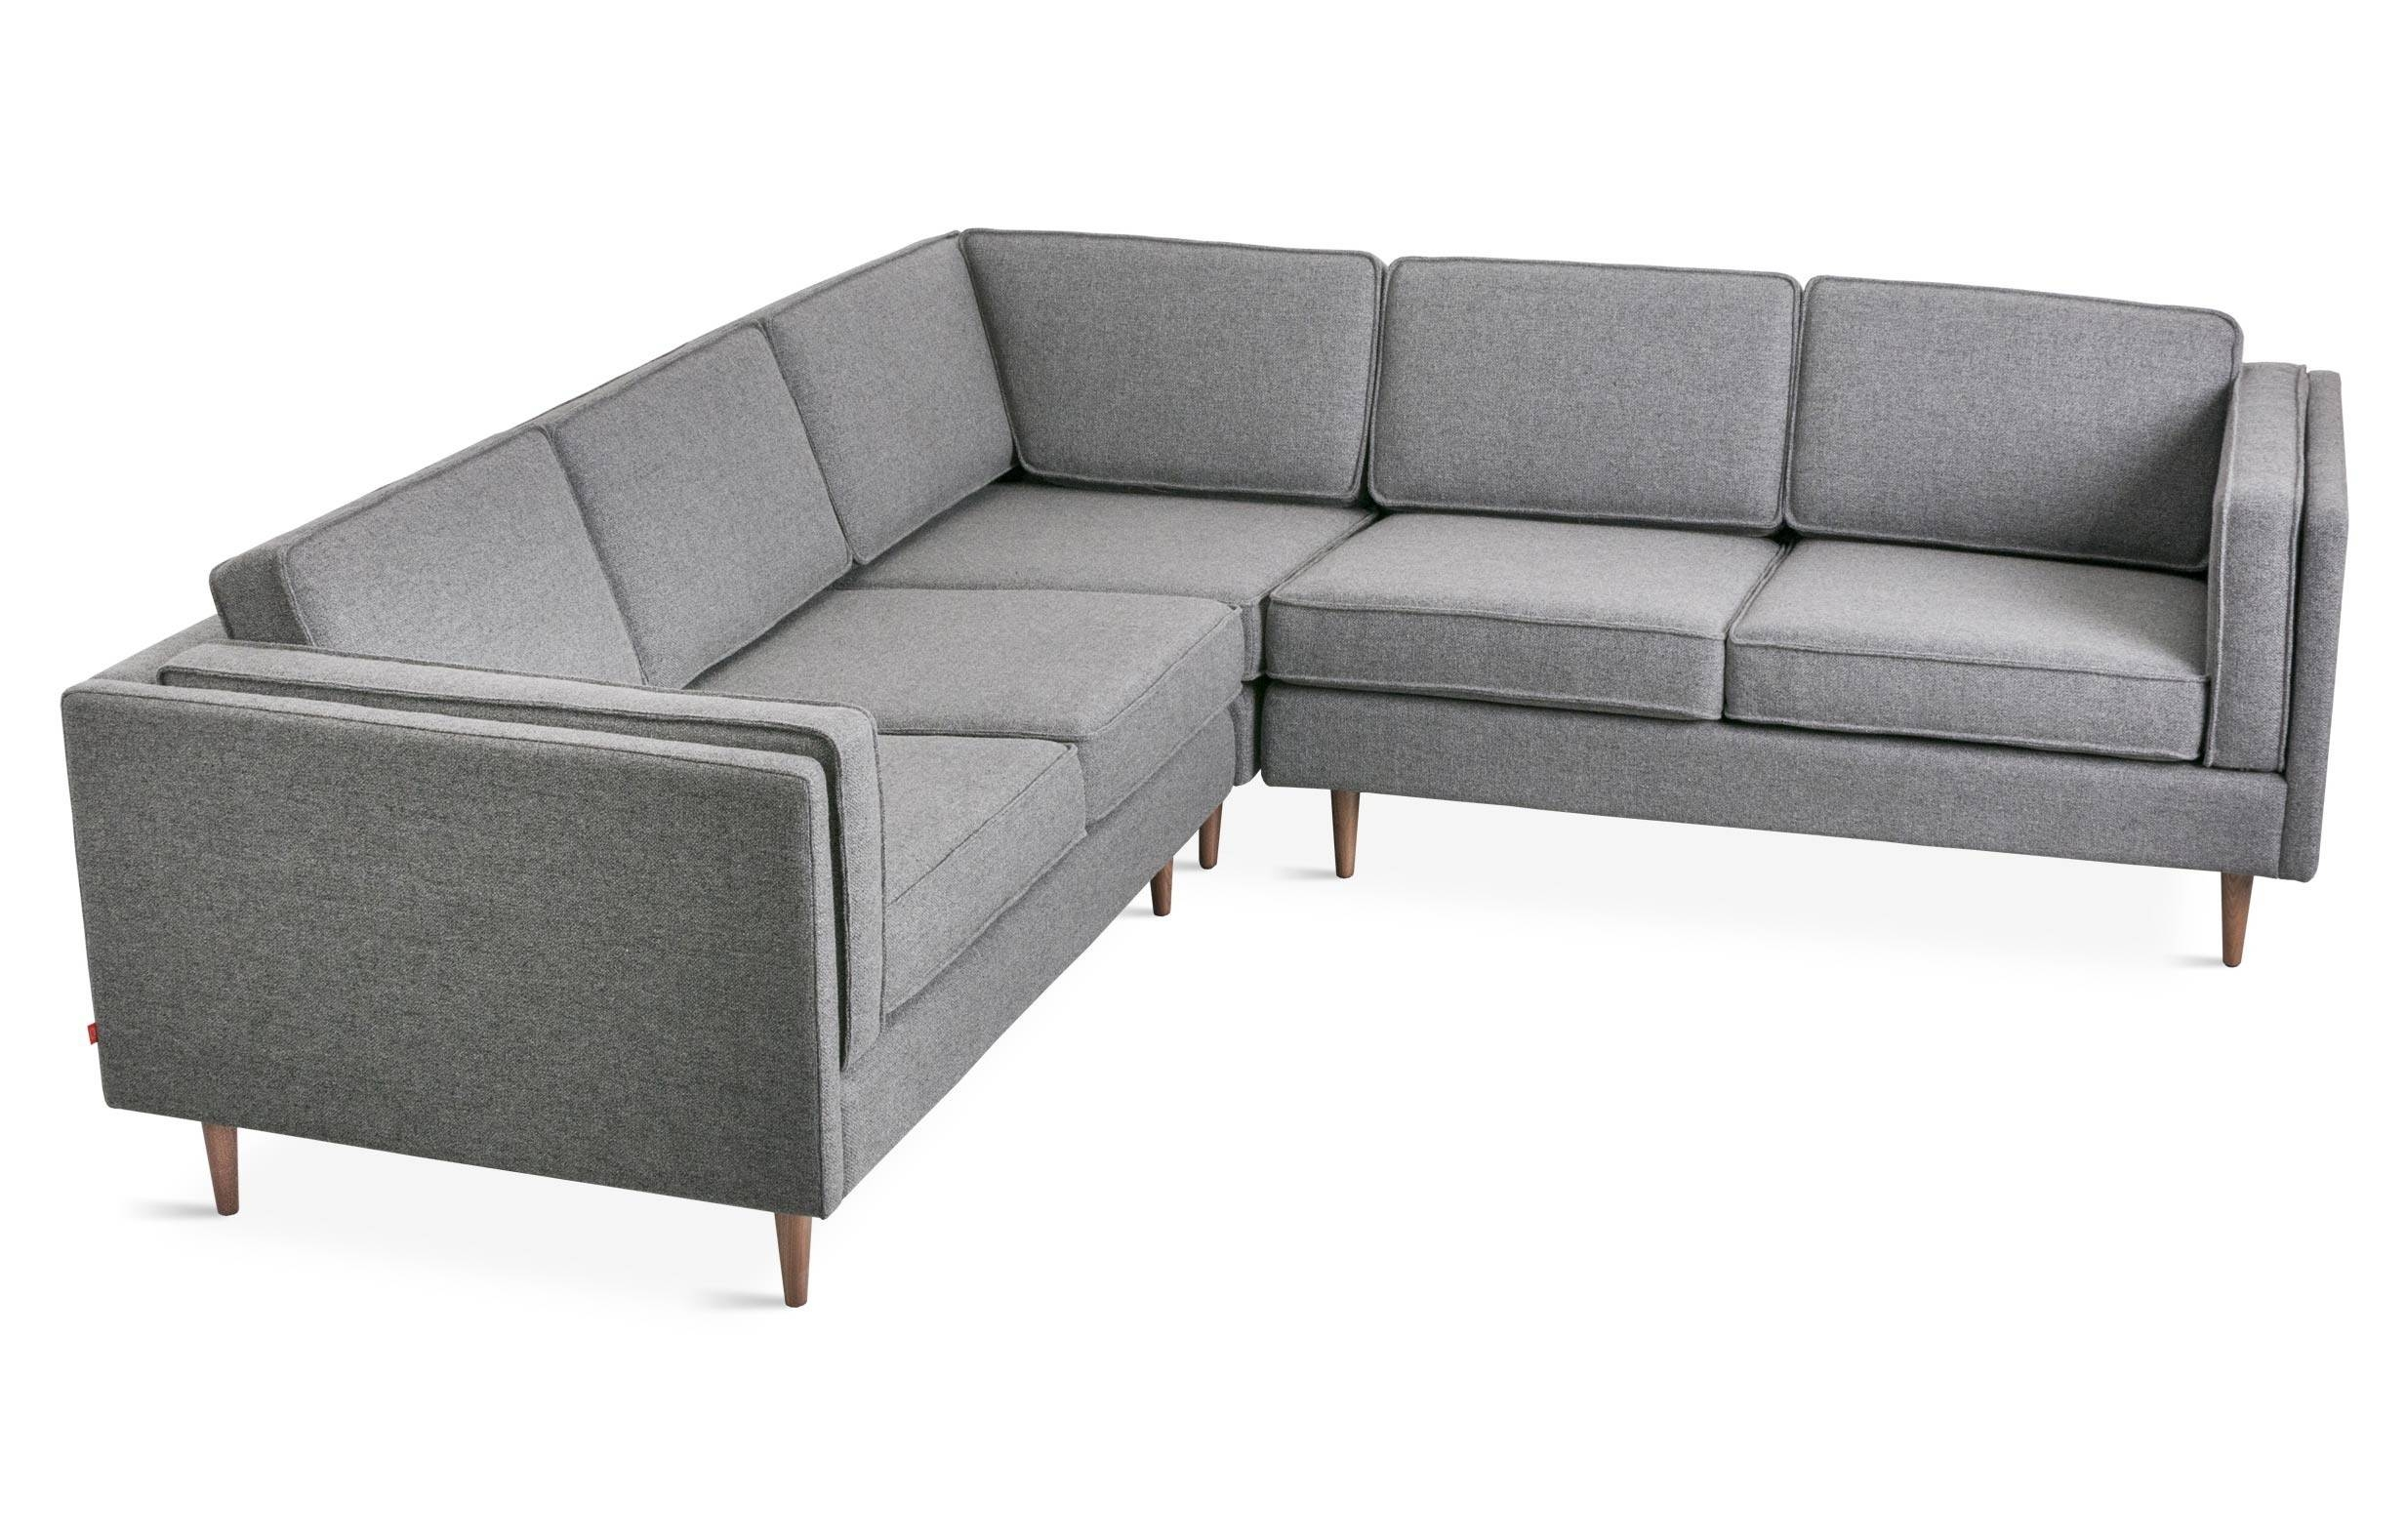 Adelaide Bi-Sectional | Viesso regarding Bisectional Sofa (Image 1 of 30)